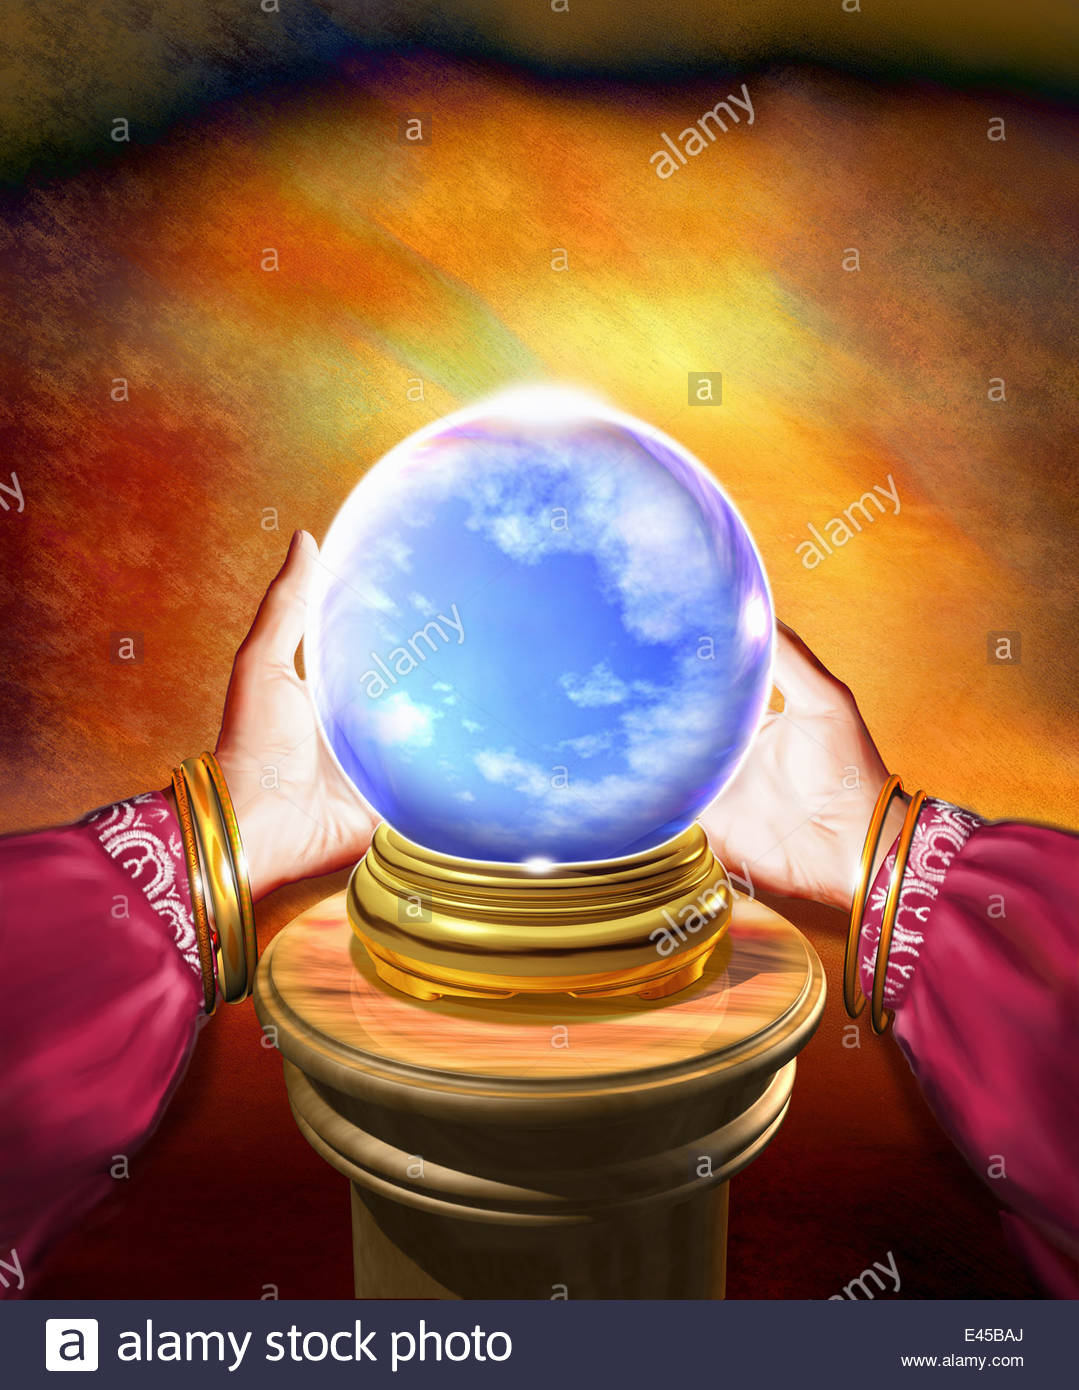 Hands of fortune teller holding crystal ball with blue sky inside - Stock Image